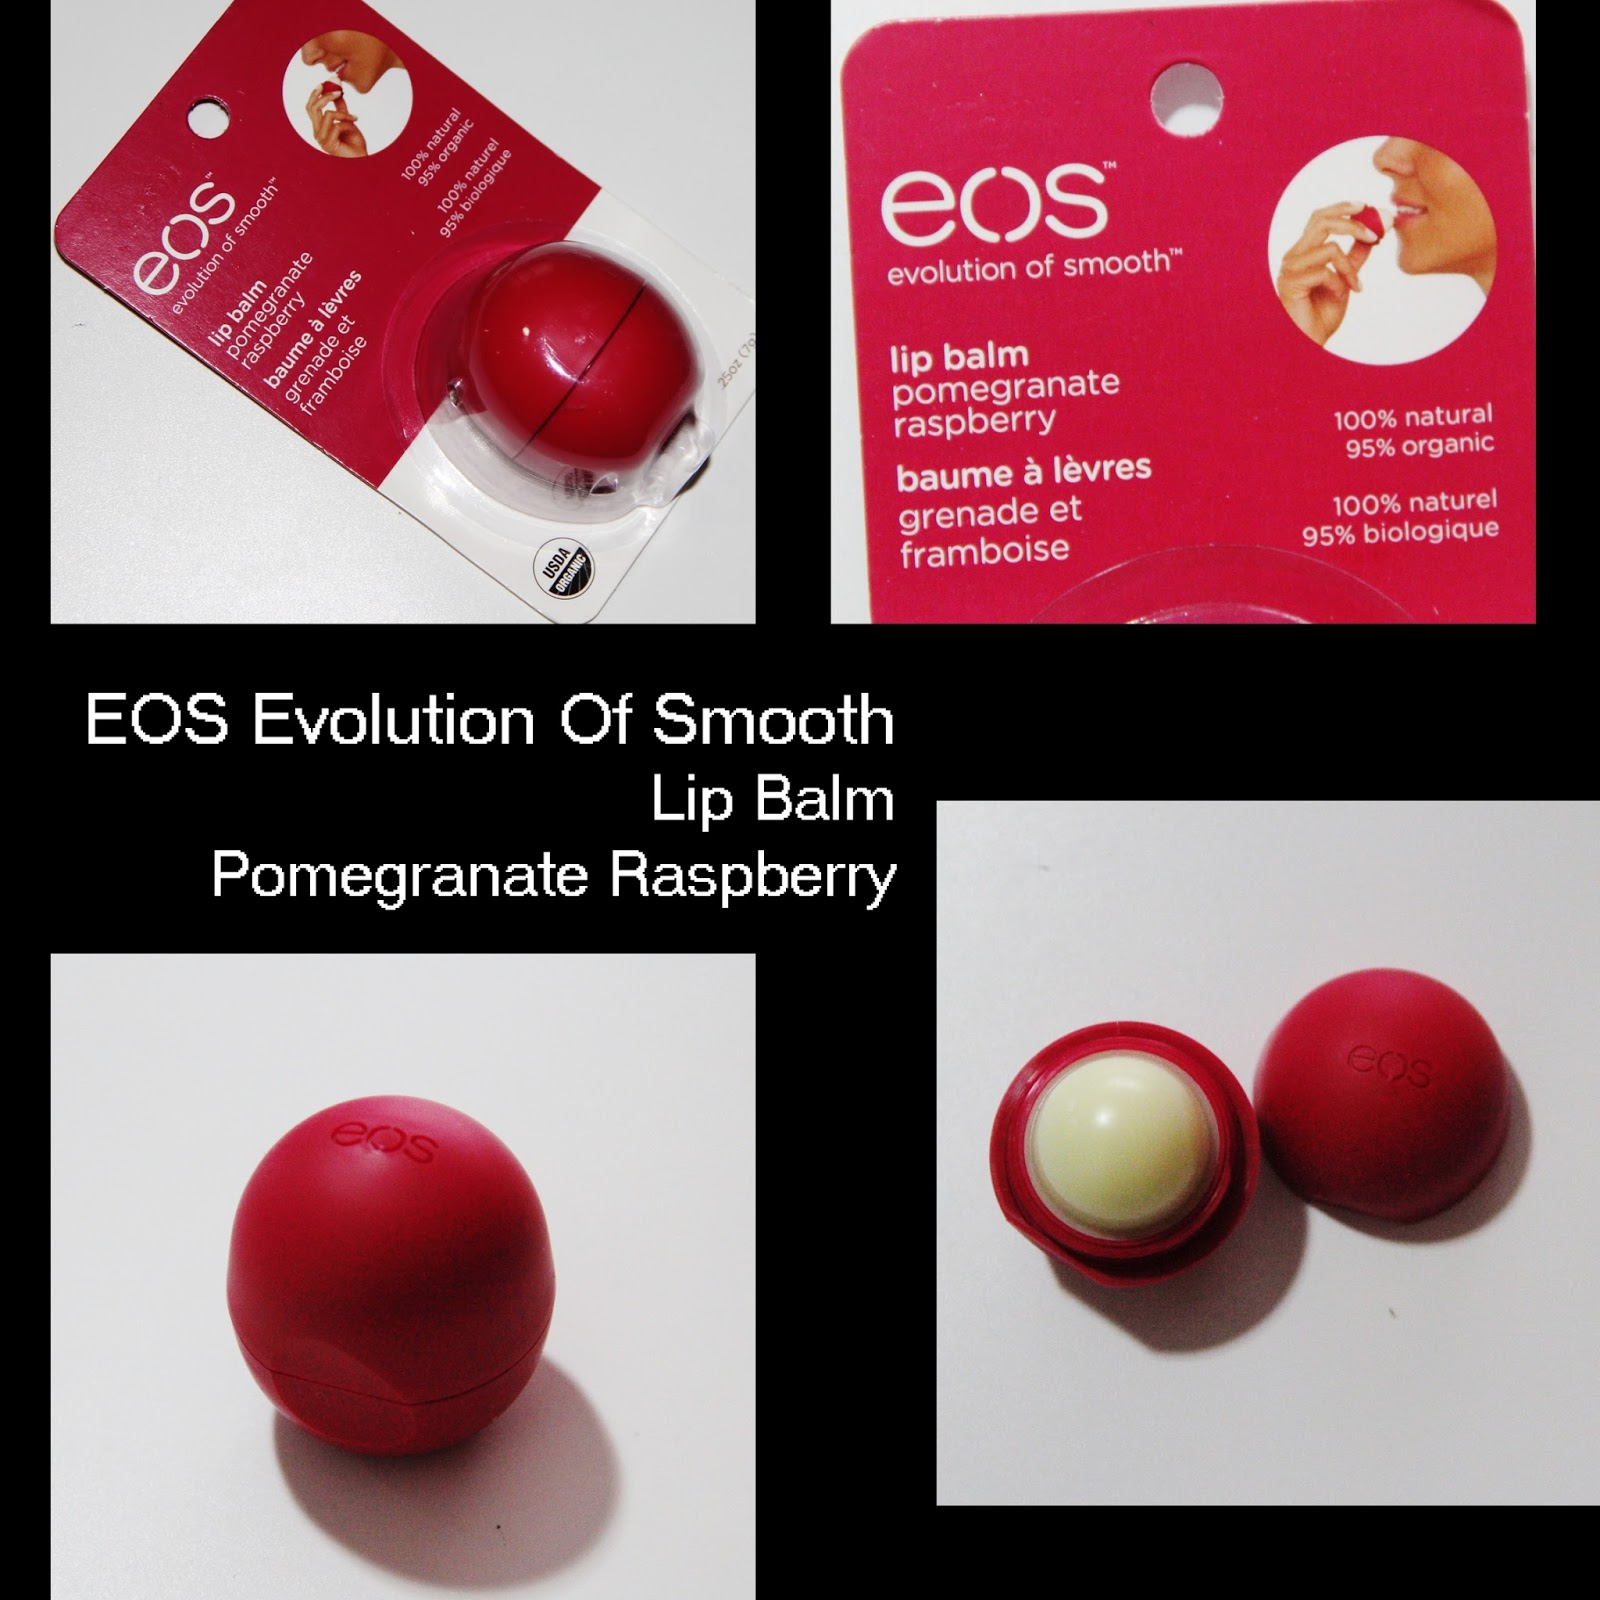 MichelaIsMyName: EOS Evolution Of Smooth Lip Balm ... Eos Evolution Of Smooth Lip Balms